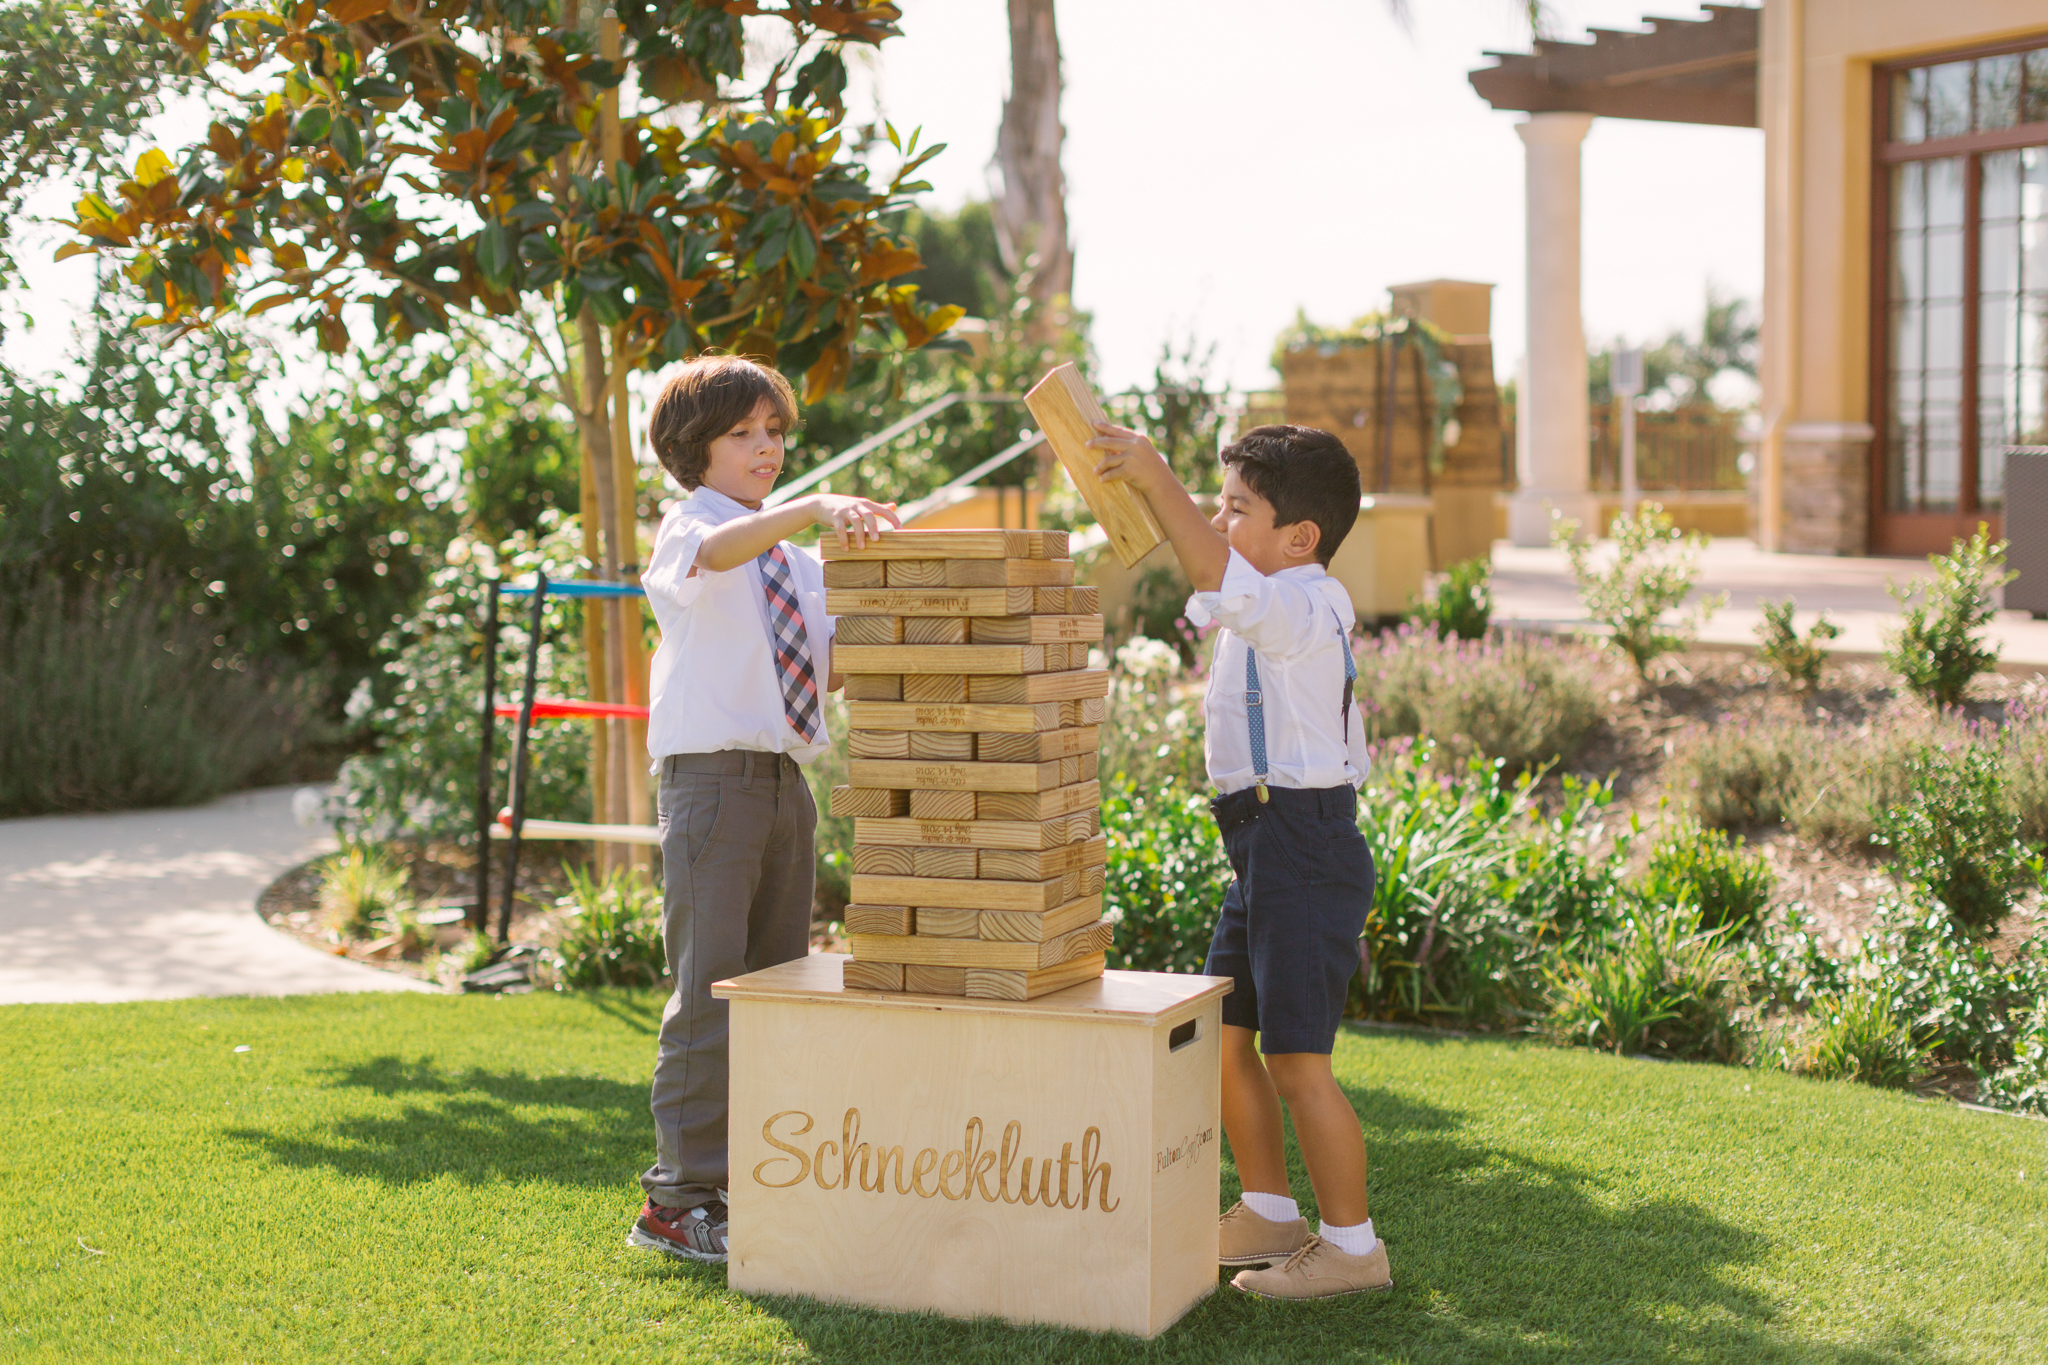 Customized Jenga game to entertain guests at San Diego, California outdoor wedding planned by Exhale Events. See all the beautiful details at exhale-events.com!